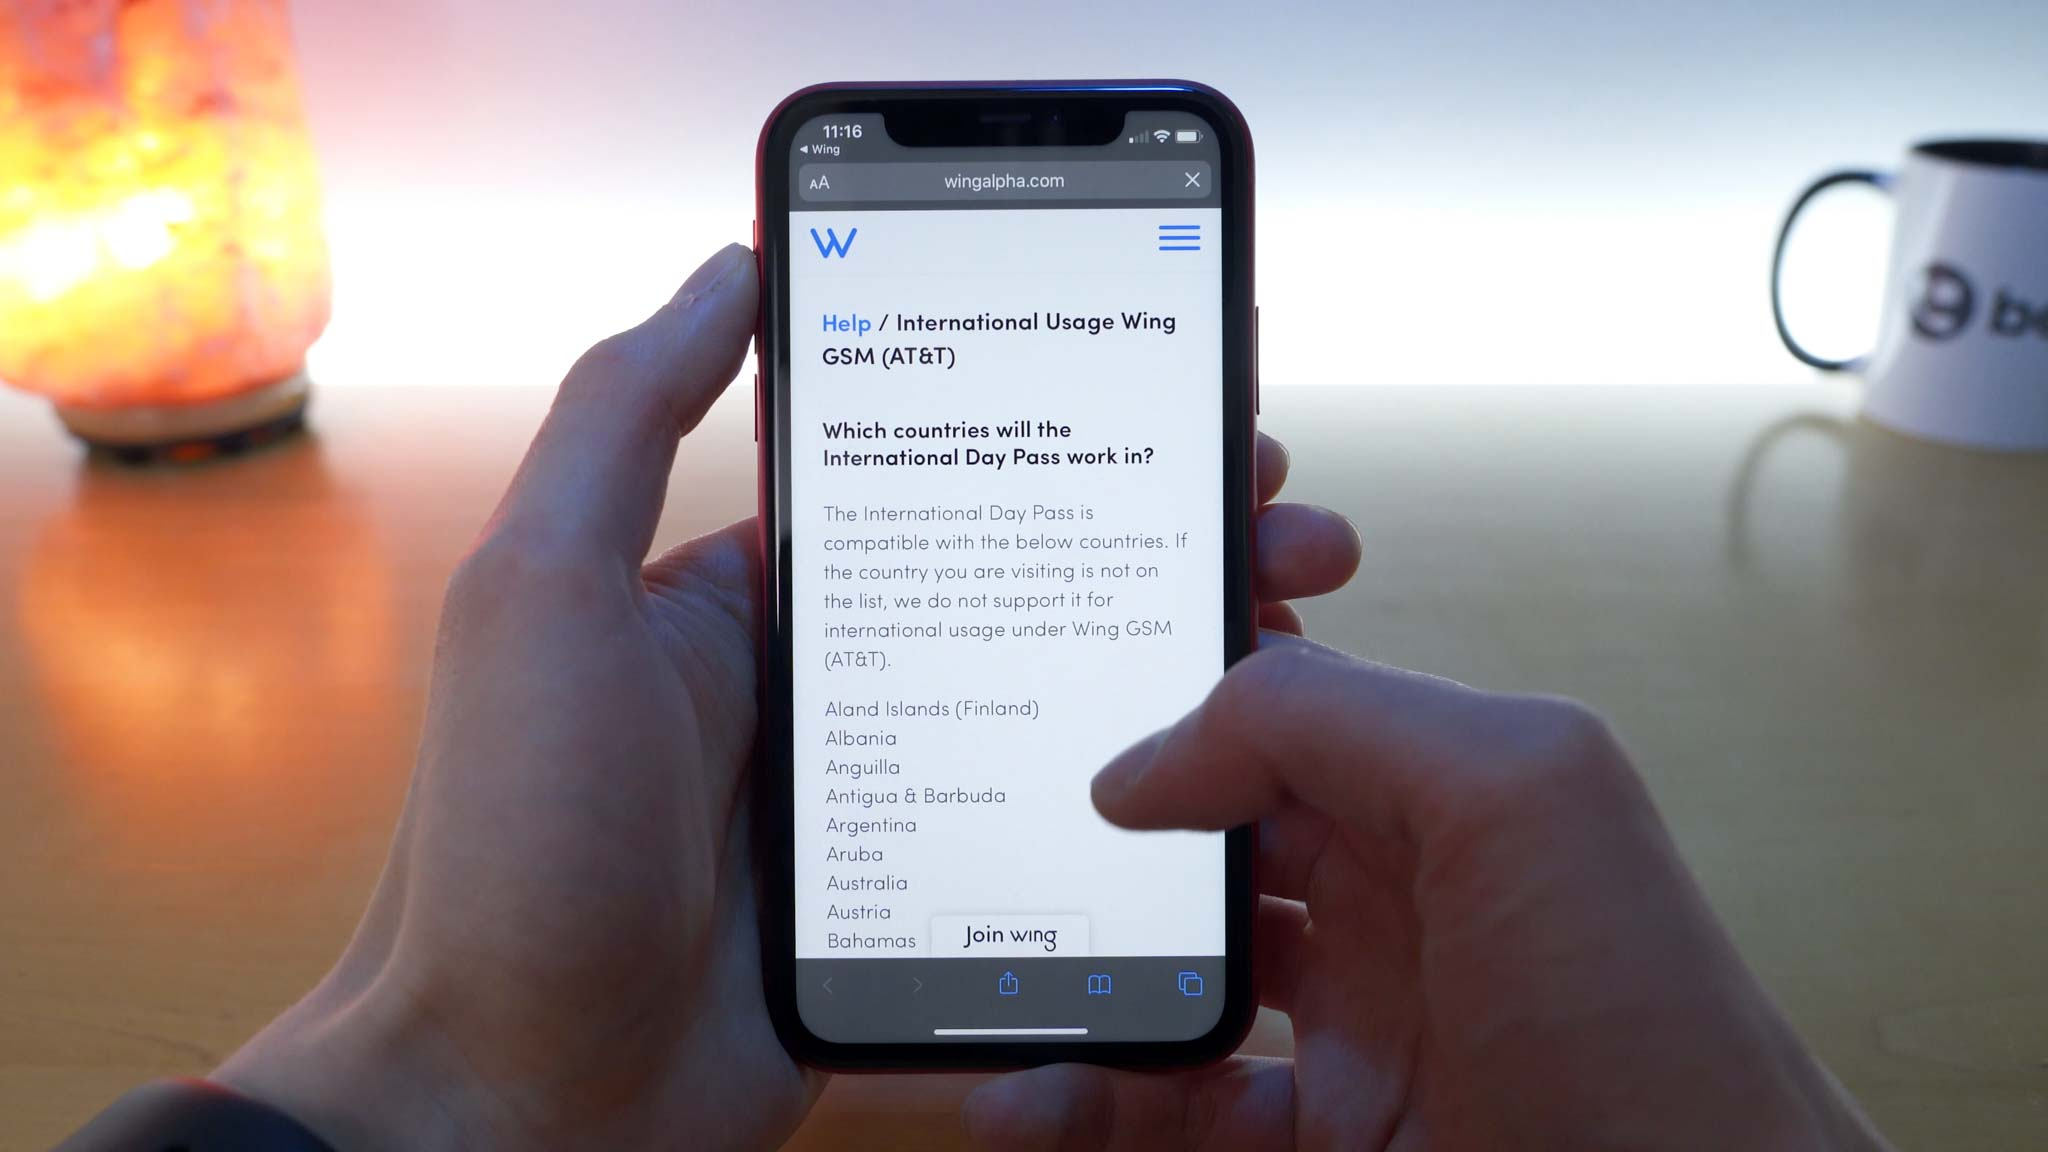 iPhone 11 Pro open to Wing website showing a list of supported international locations